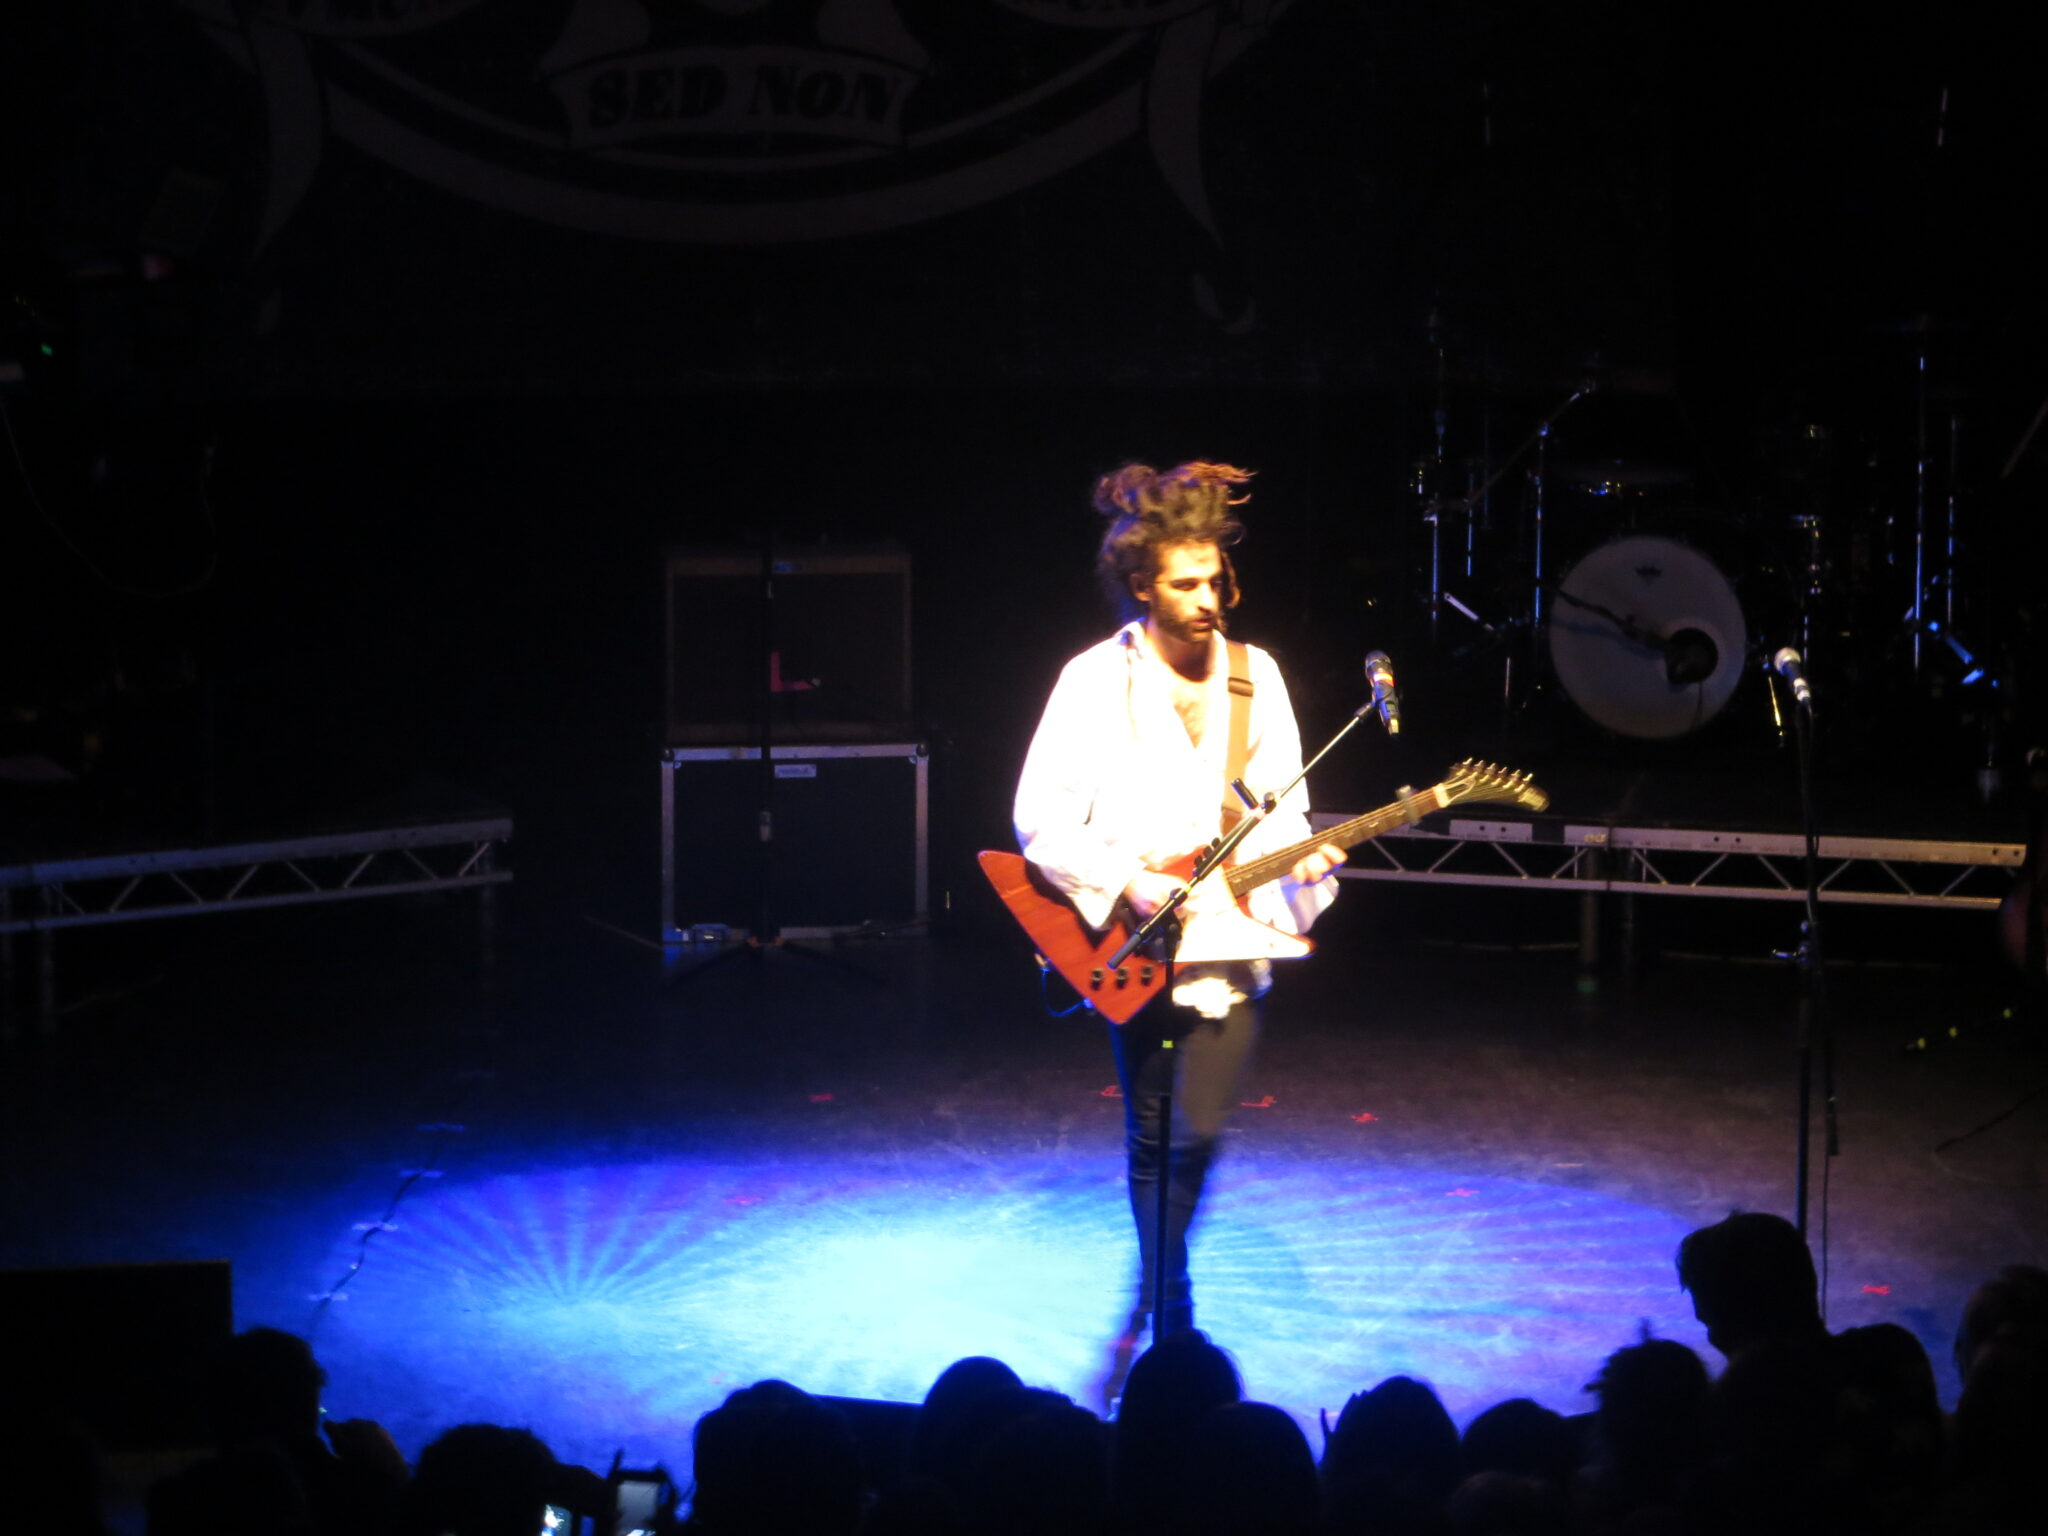 King Charles sings at Shepherds Bush